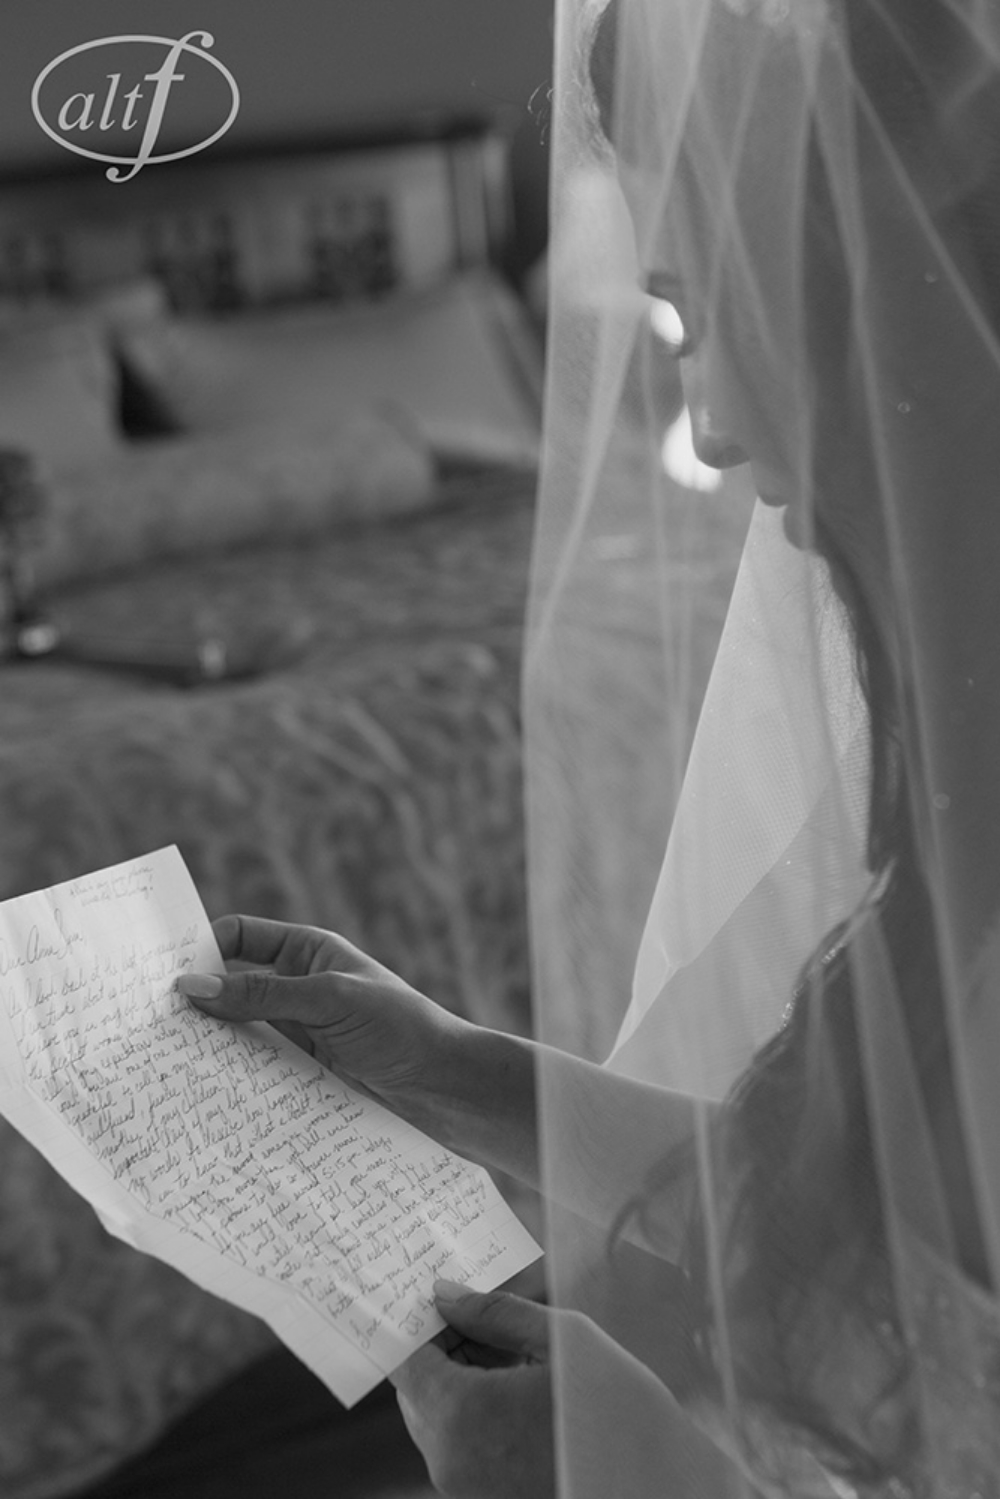 The bride received a love letter from the groom.  Black and white photo. Las Vegas Wedding Planner Andrea Eppolito.  Image by Altf.com.